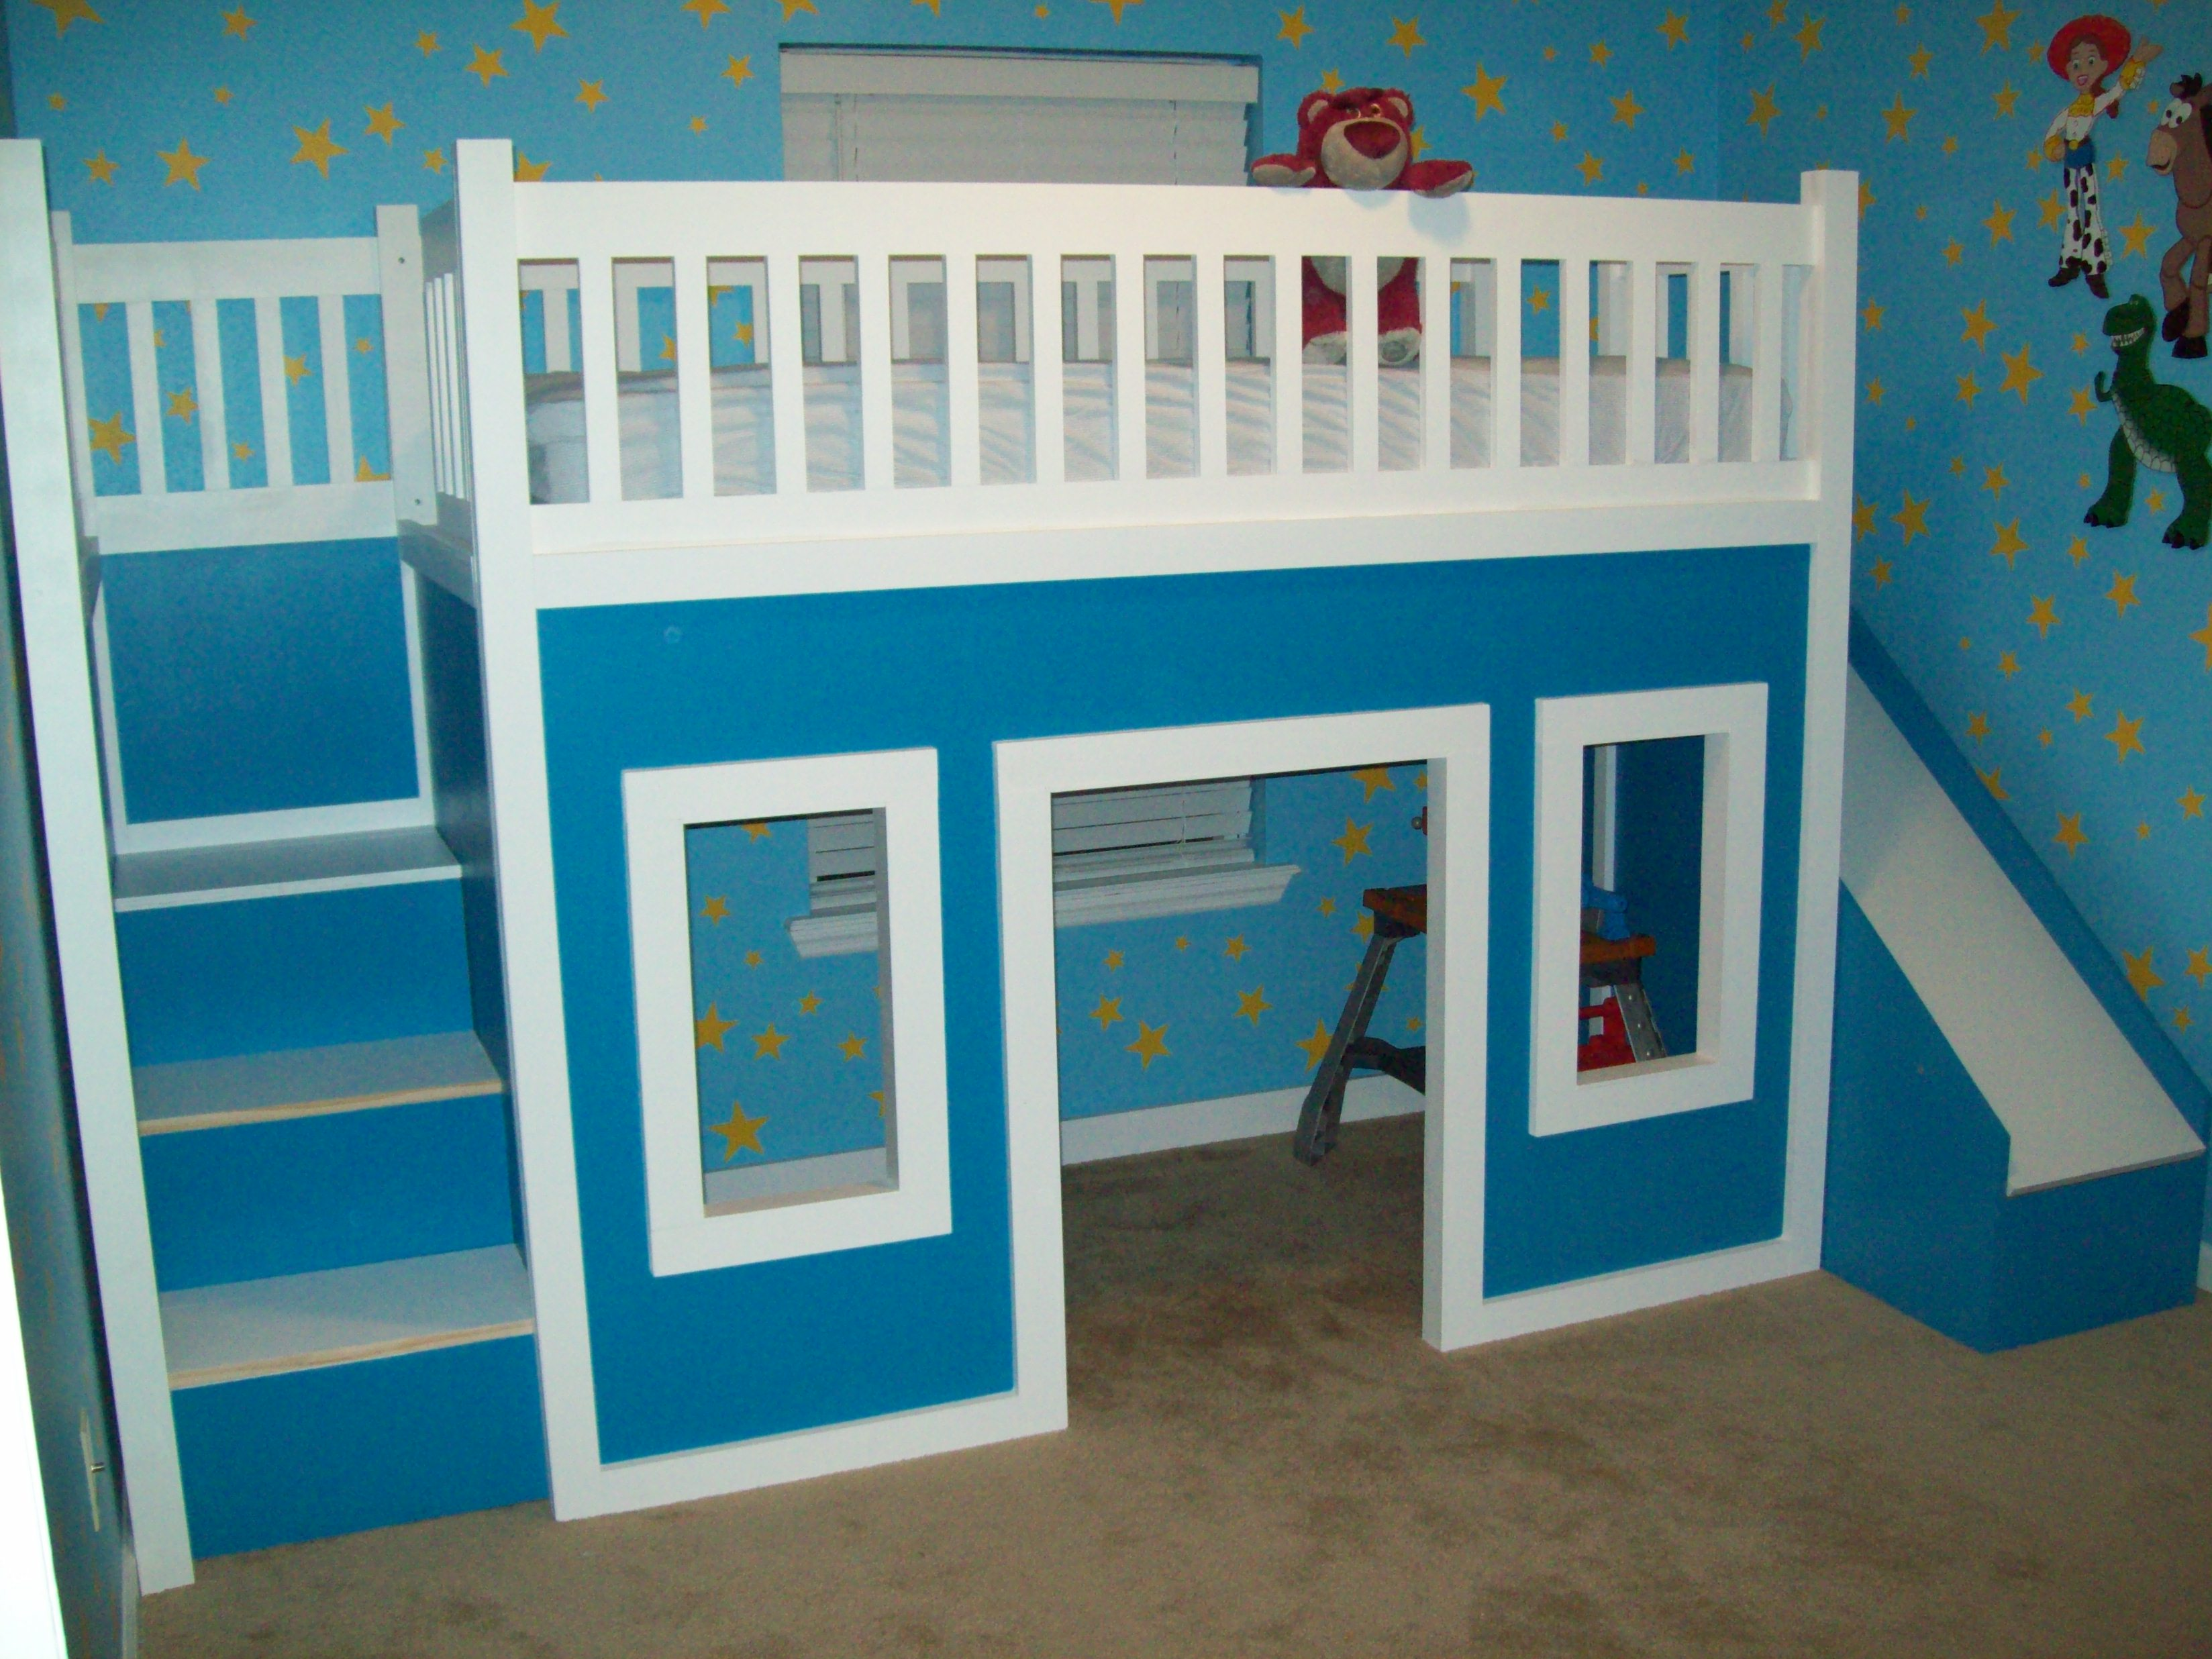 Loft beds with slide and ladder playhouse loft bed with stairs and slide FKMDLIN